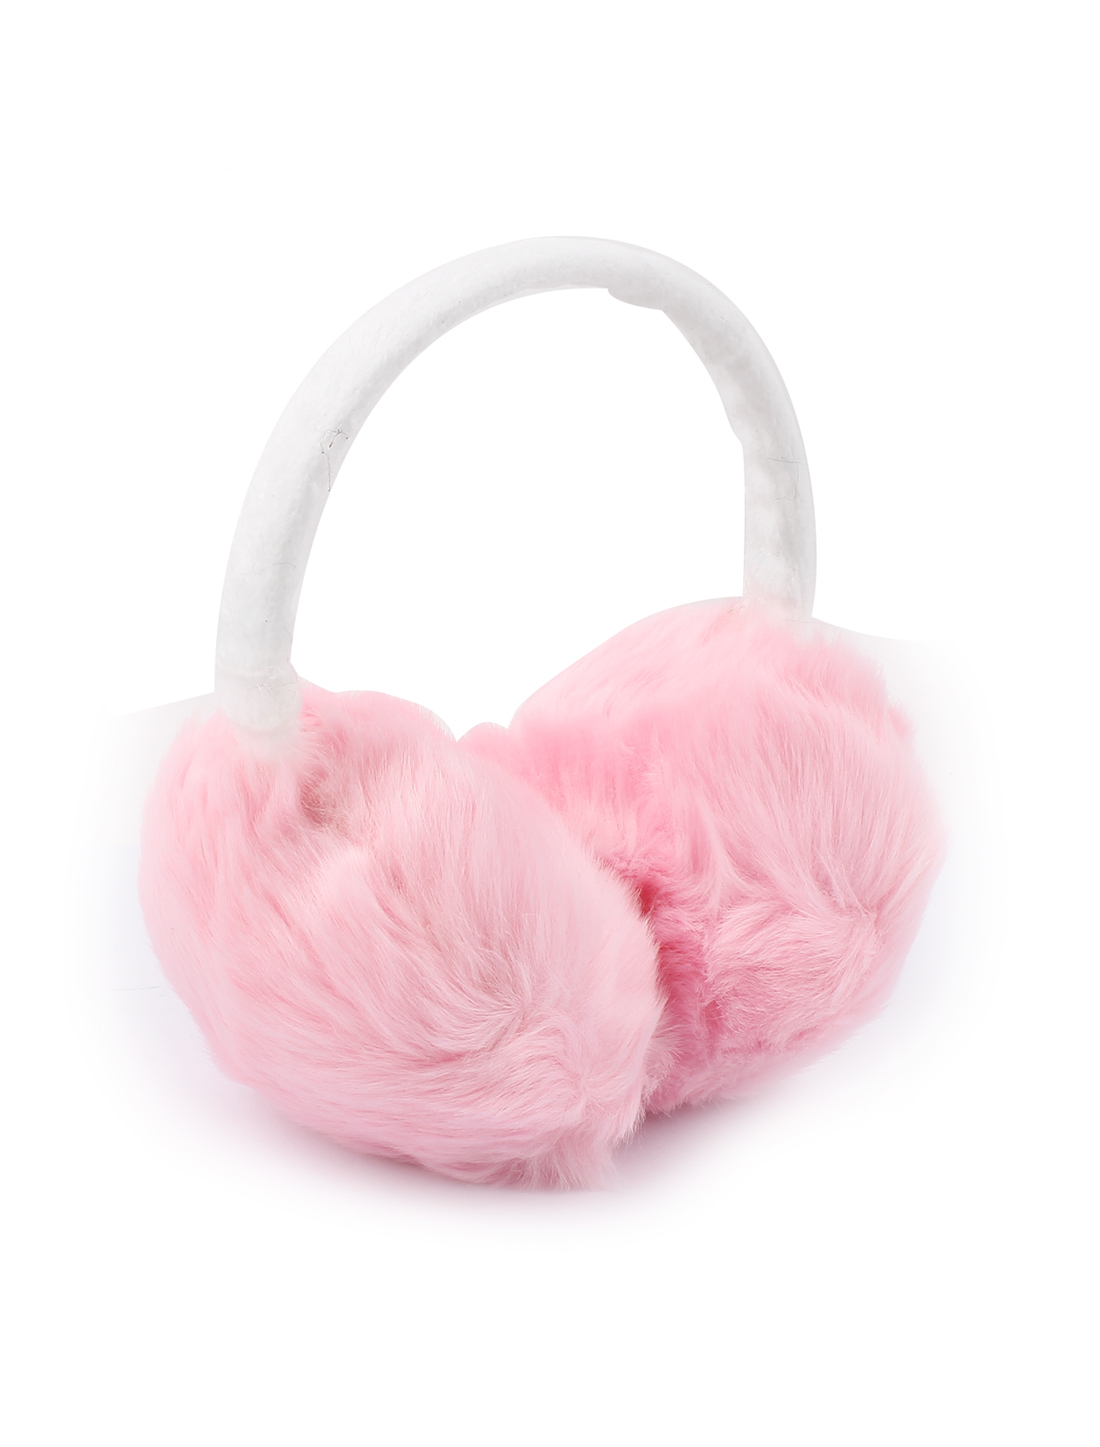 Girls Lady Winter Plush Earmuffs Ear Warmers Earlap Headband White Pink